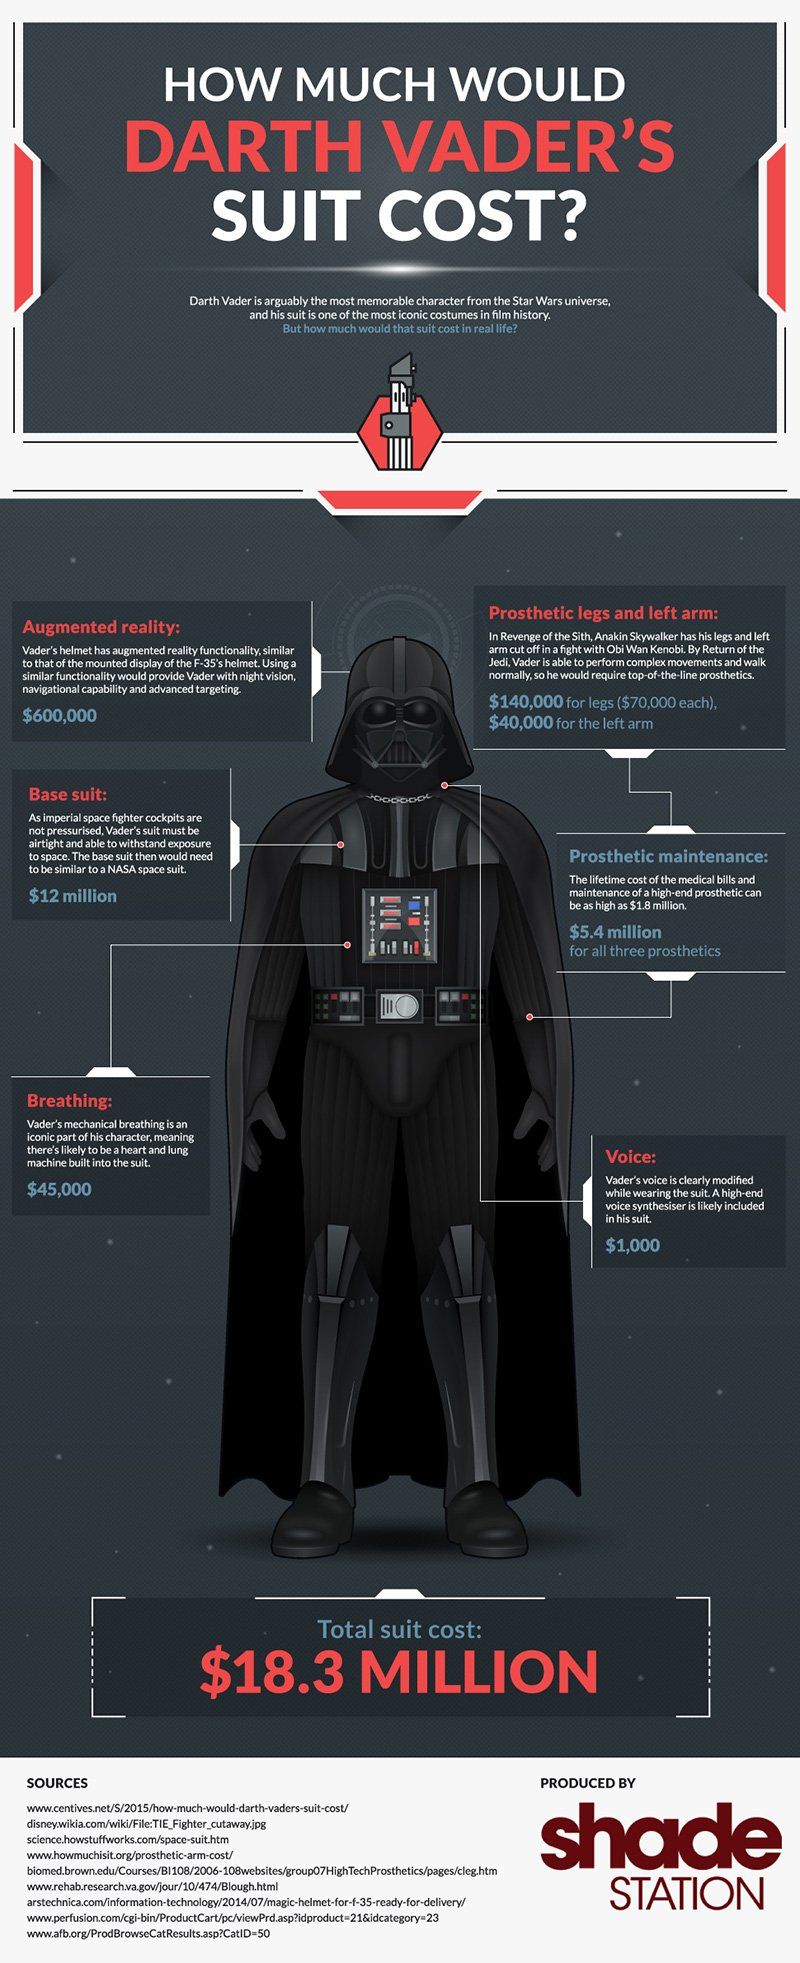 Darth-Vader-suit-cost-01